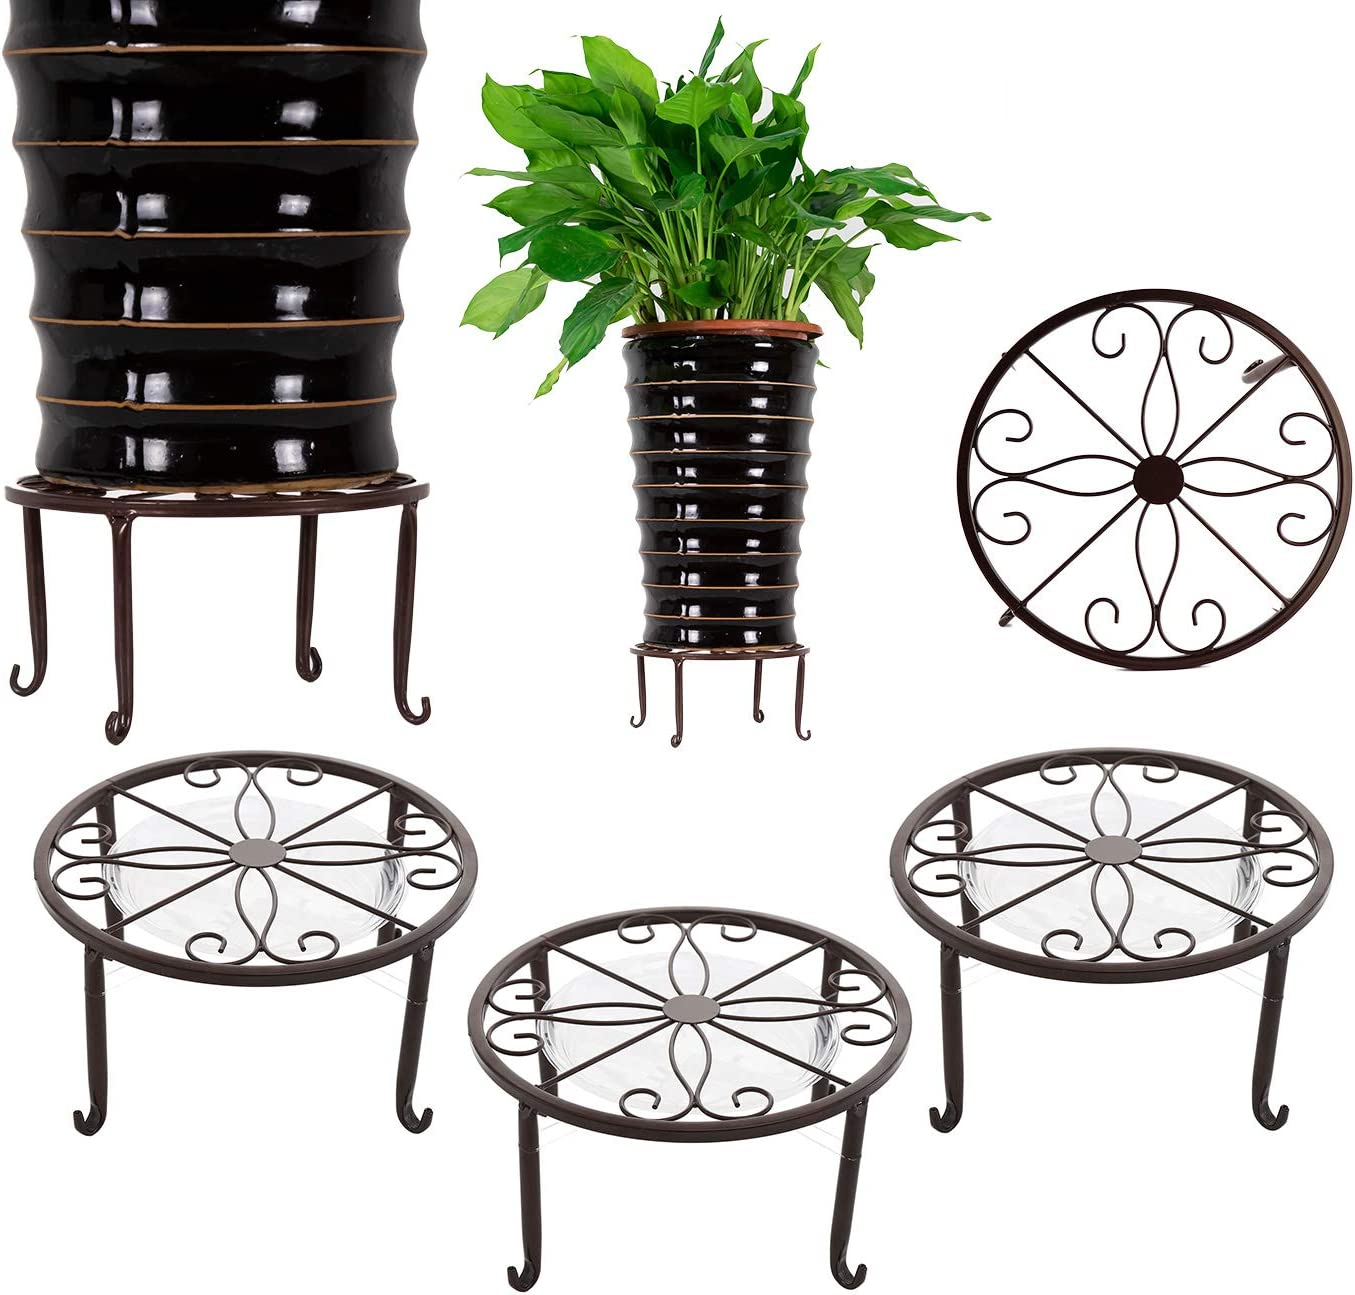 3 Pack Metal Potted Plant Stands